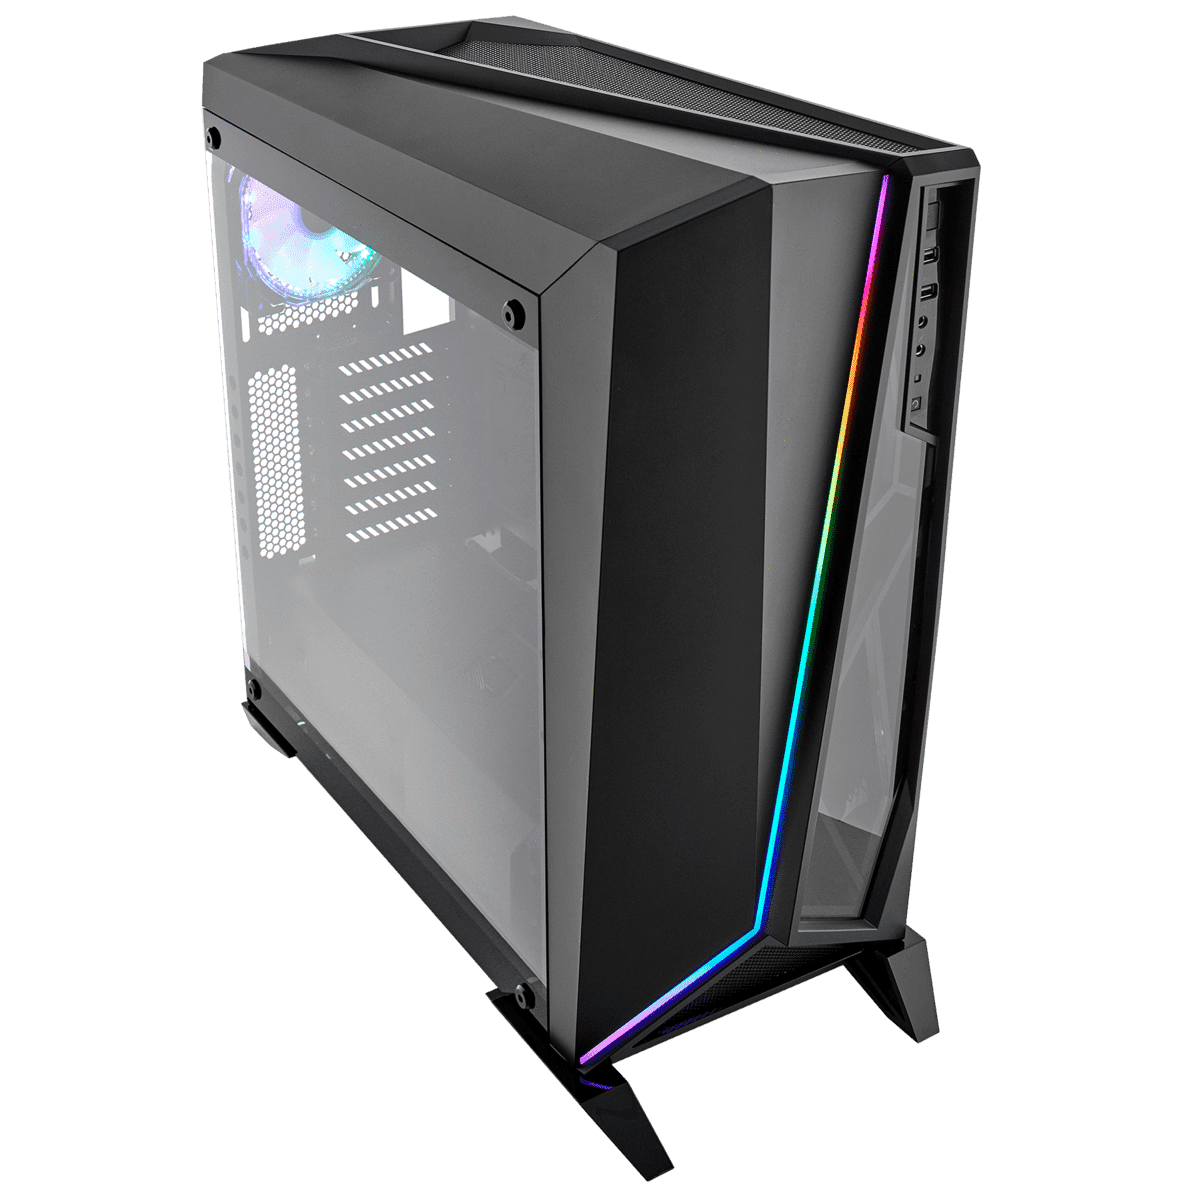 WM Gaia Gaming - WMTech - Buy Components | Gaming PC | Enterprise Solutions